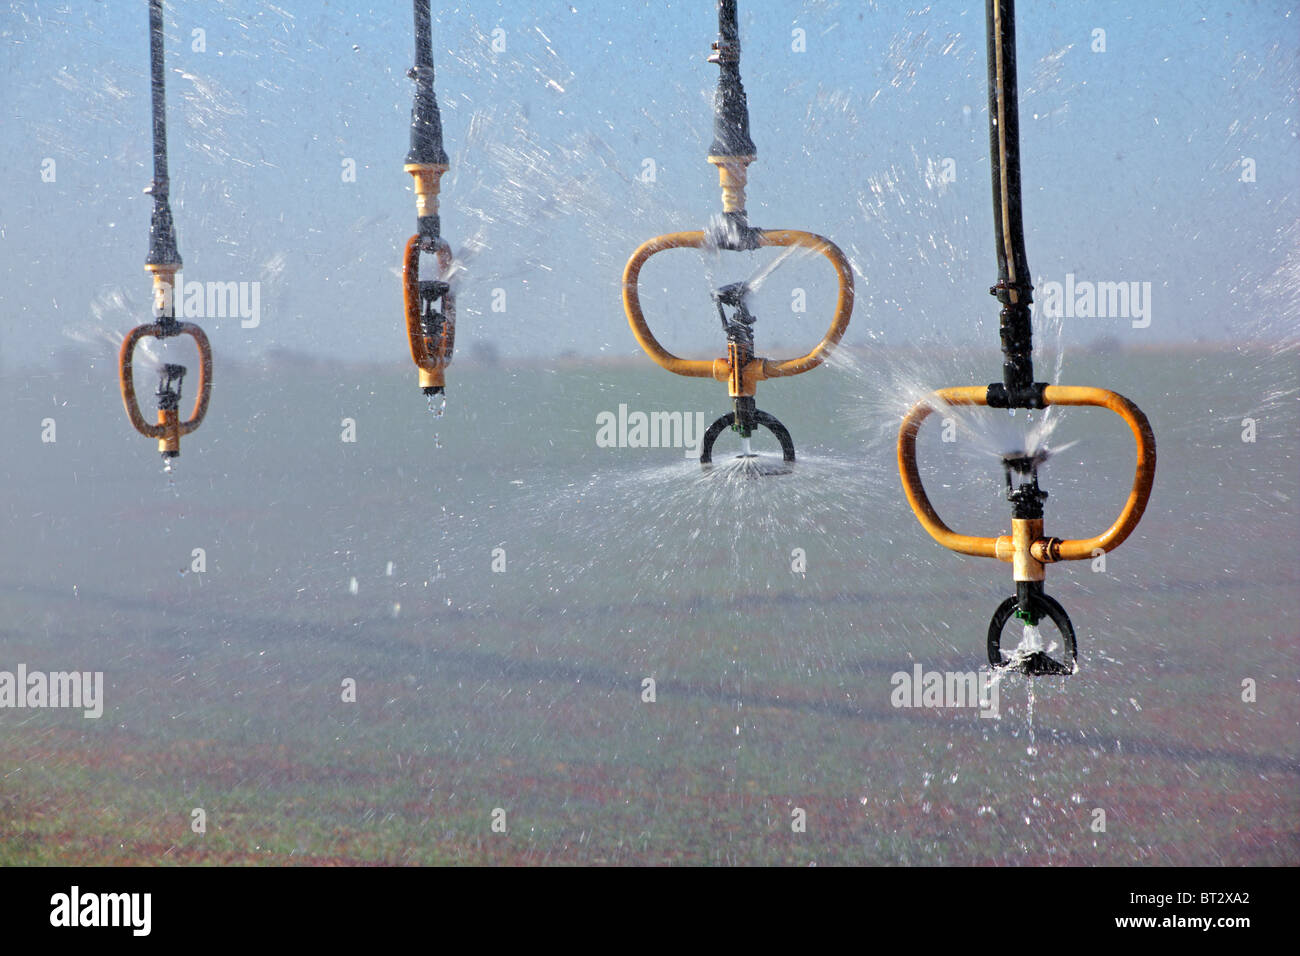 Water sprinklers of a center pivot crop irrigation system - Stock Image